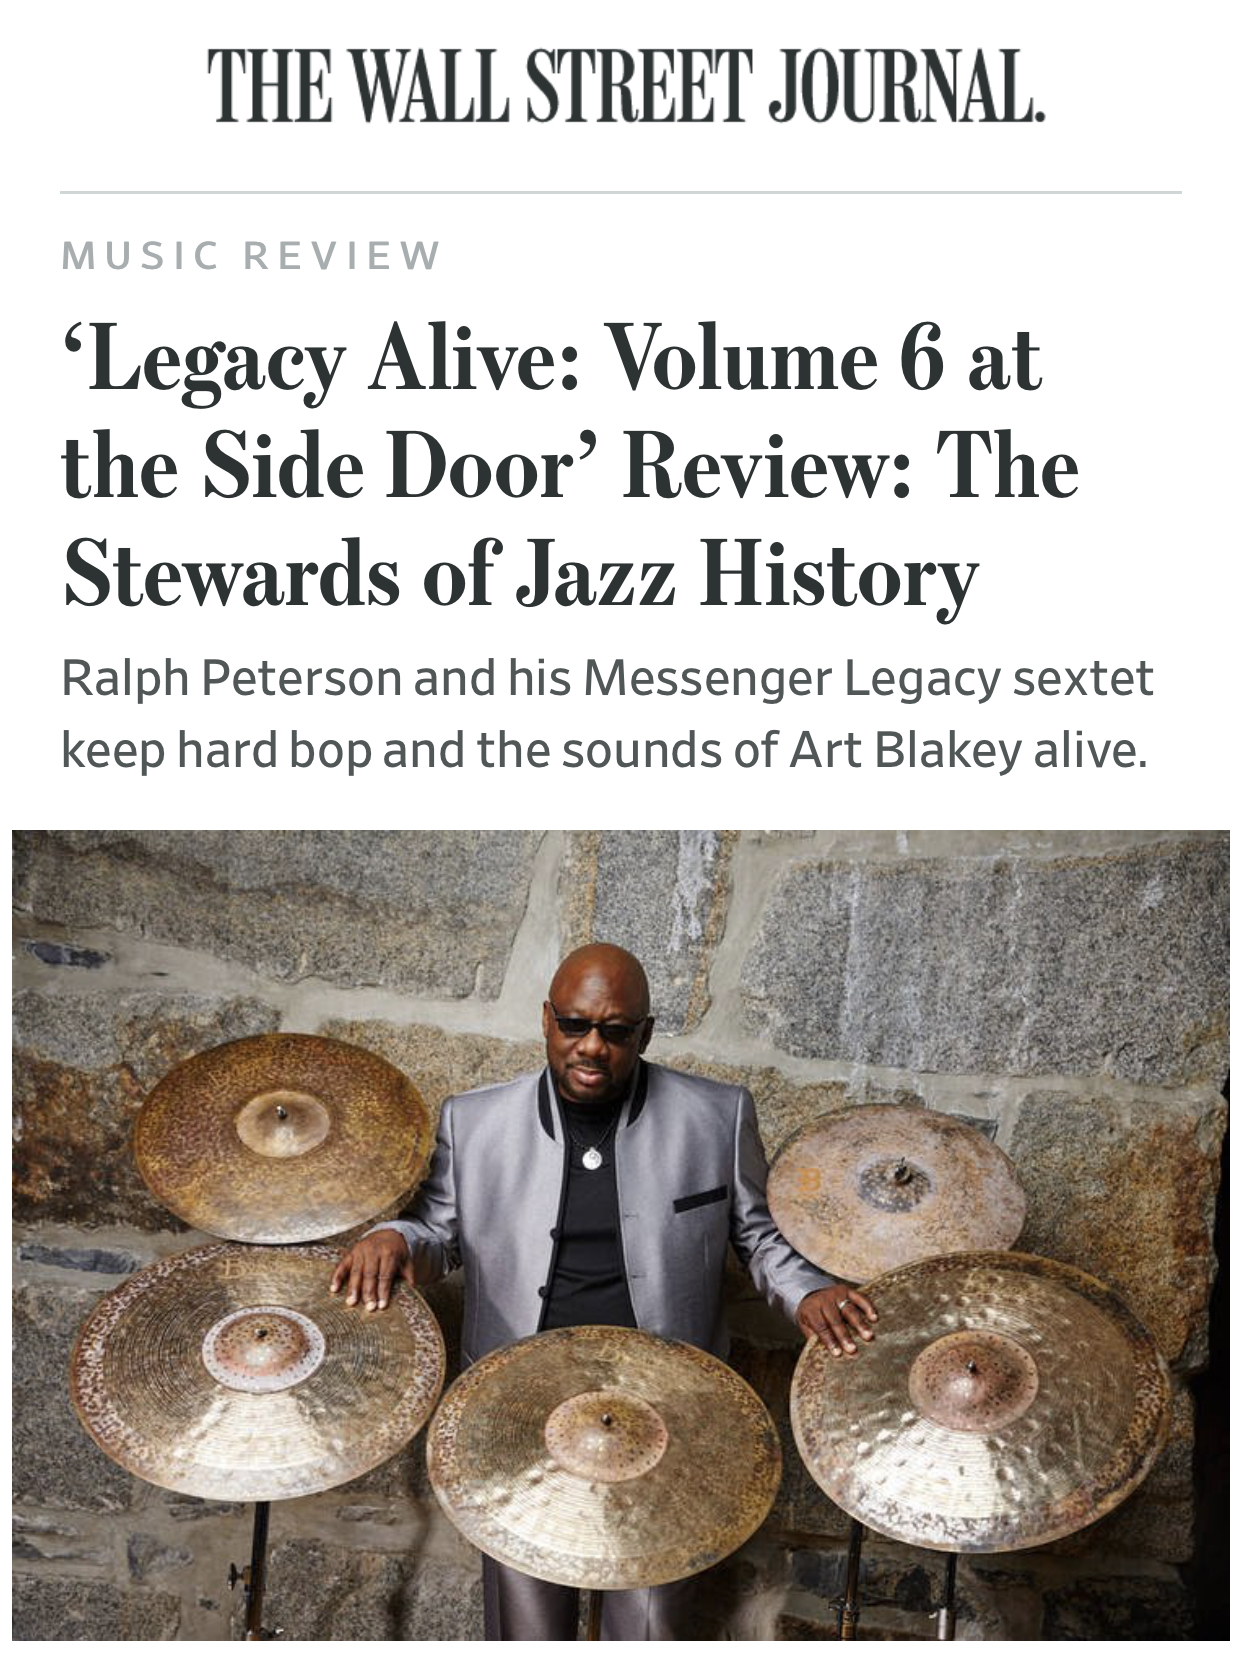 WALL STREET JOURNAL: Ralph Peterson and the Messenger Legacy Reviewed by Larry Blumenfeld